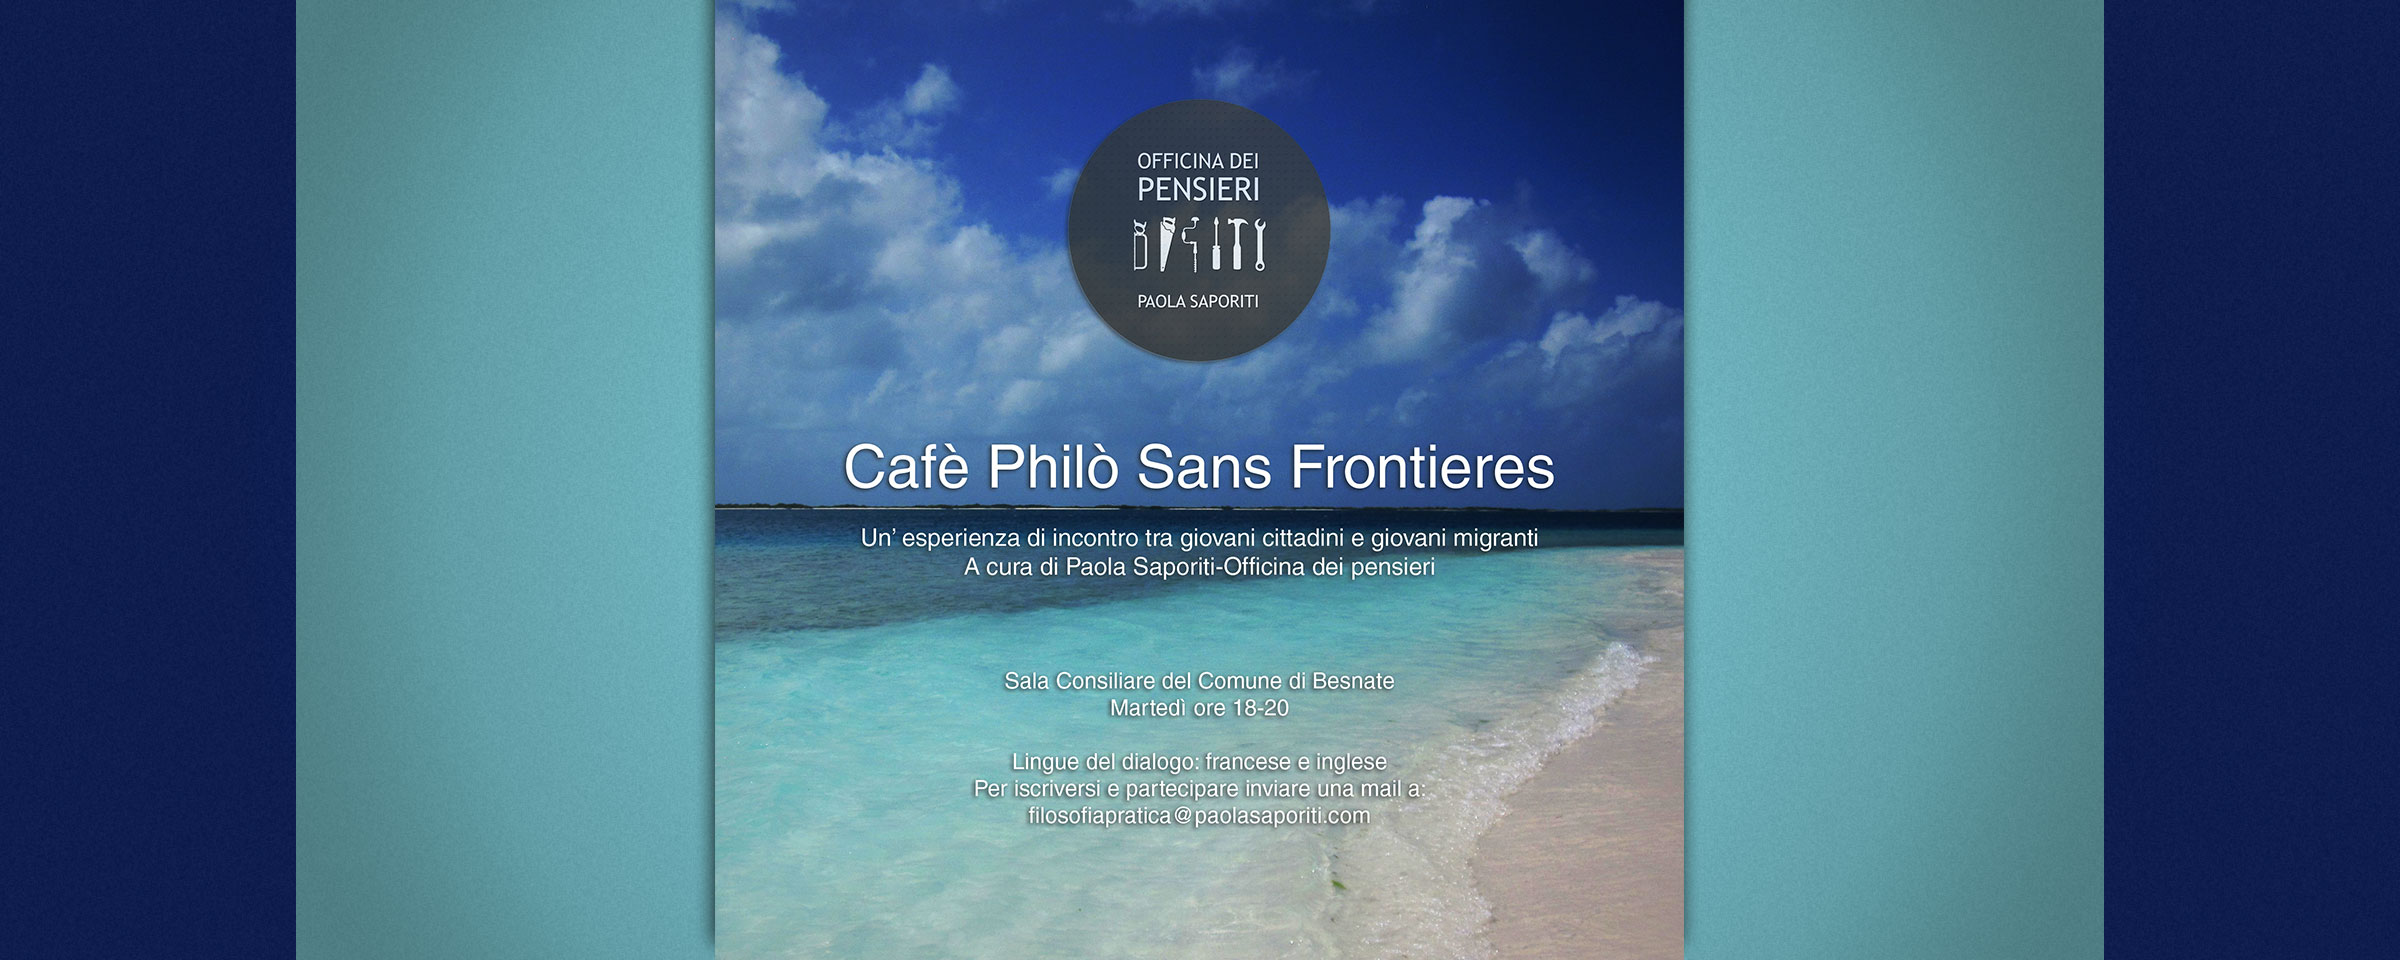 cafe-philo-sans-frontieres